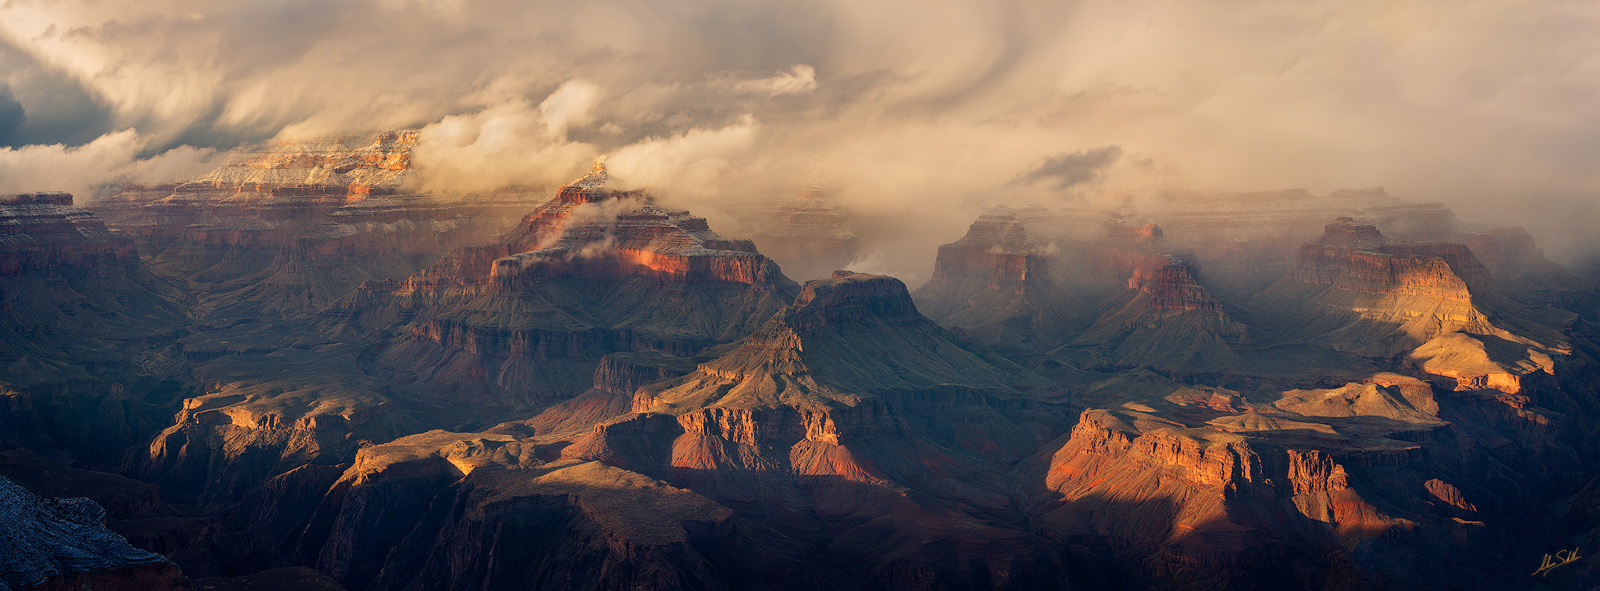 Dramatic light falls upon the Grand Canyon as the clouds from a winter storm are shredded by the landscape. Isis Temple appears...